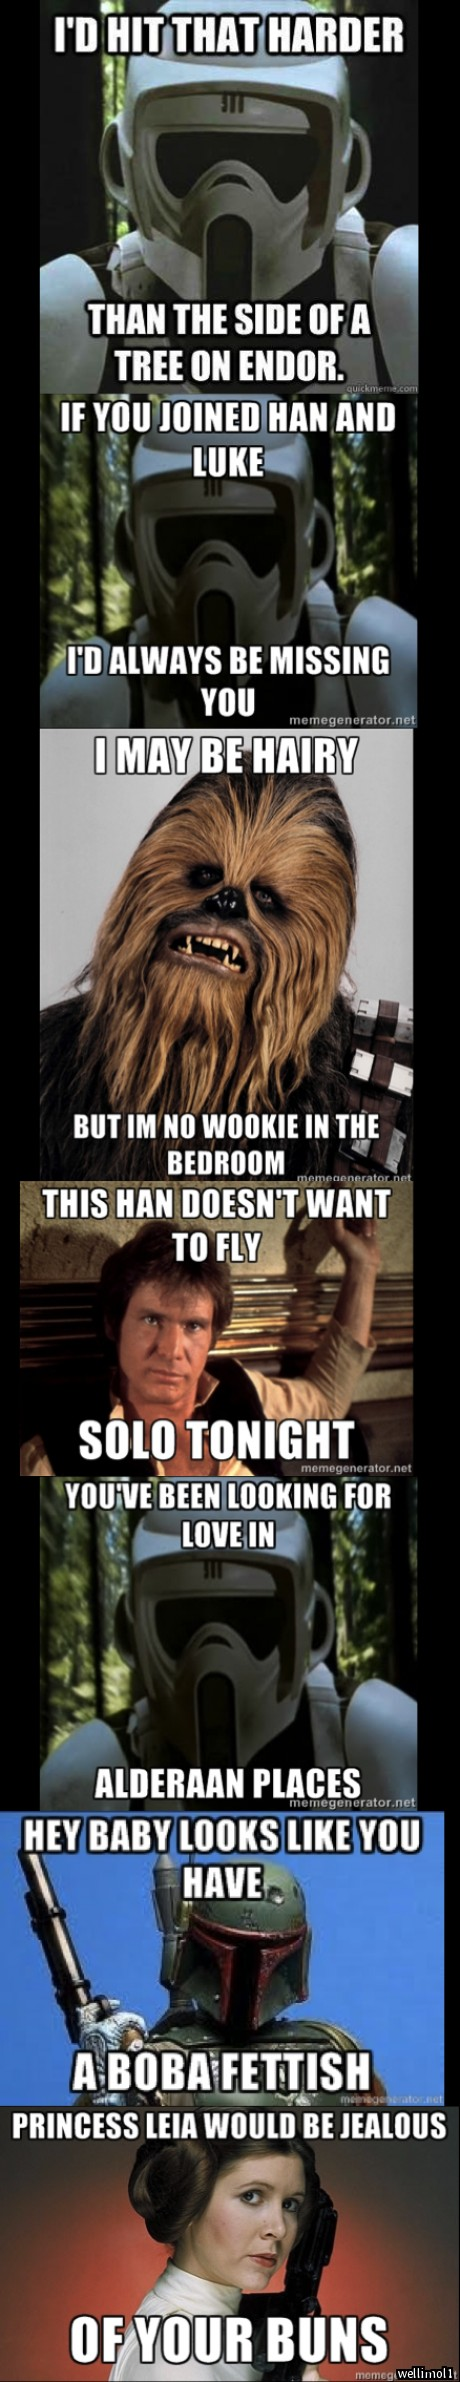 Star Wars Pickup Lines Pt 1 More To Come If You Guys Like Them Pick Up Lines Pic Up Lines Star Wars